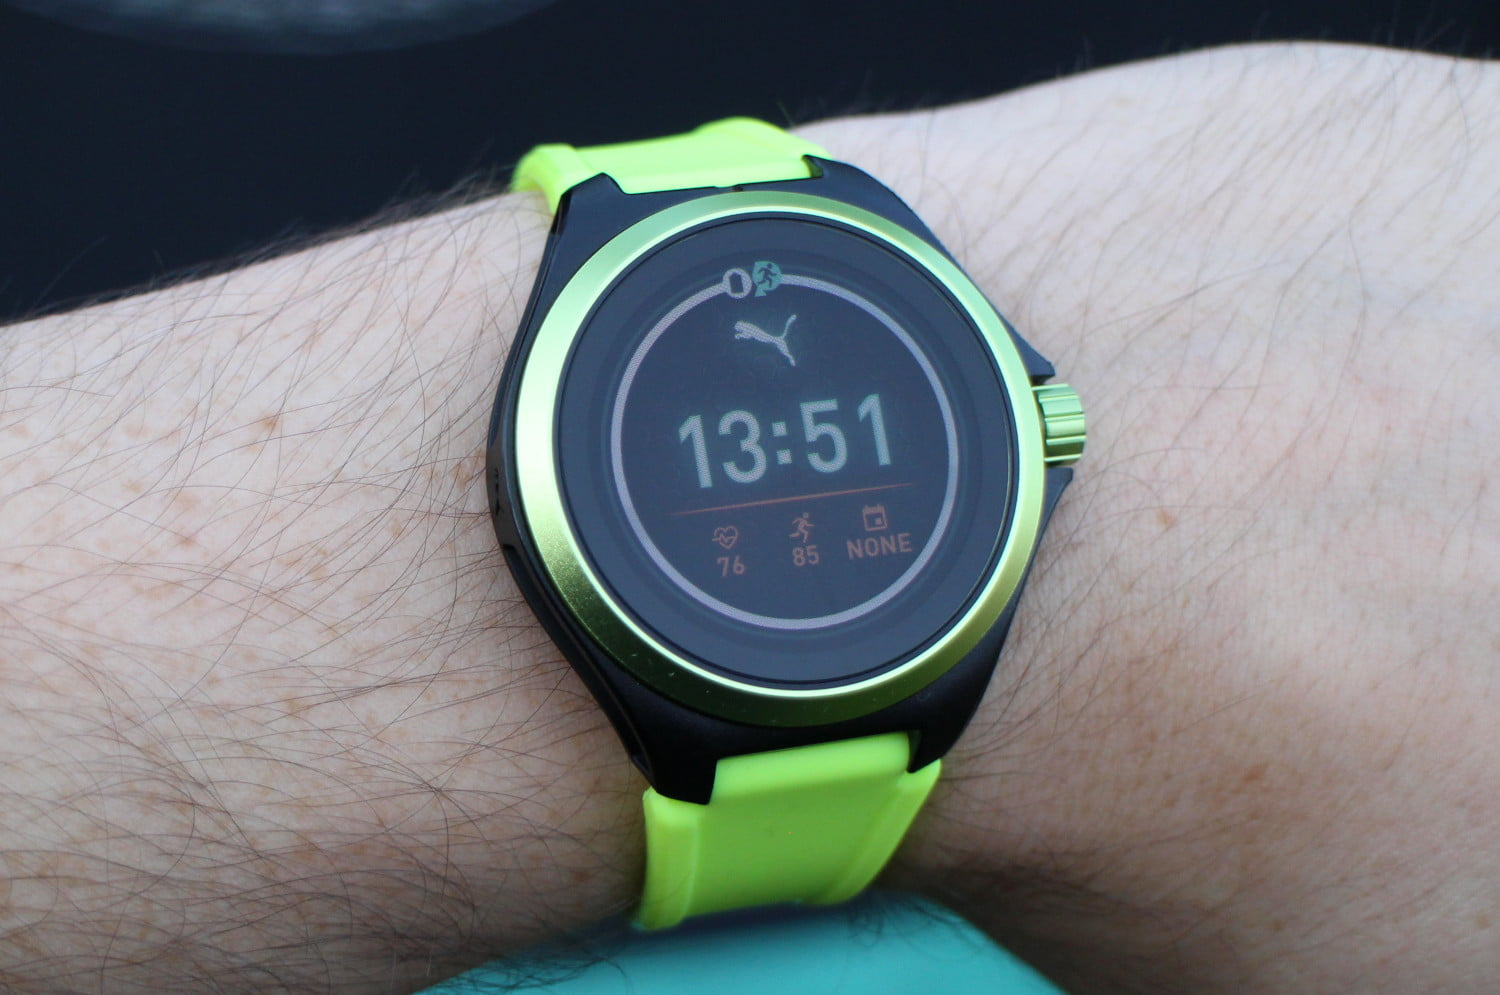 Puma Smartwatch review: It looks sporty, but fails to perform